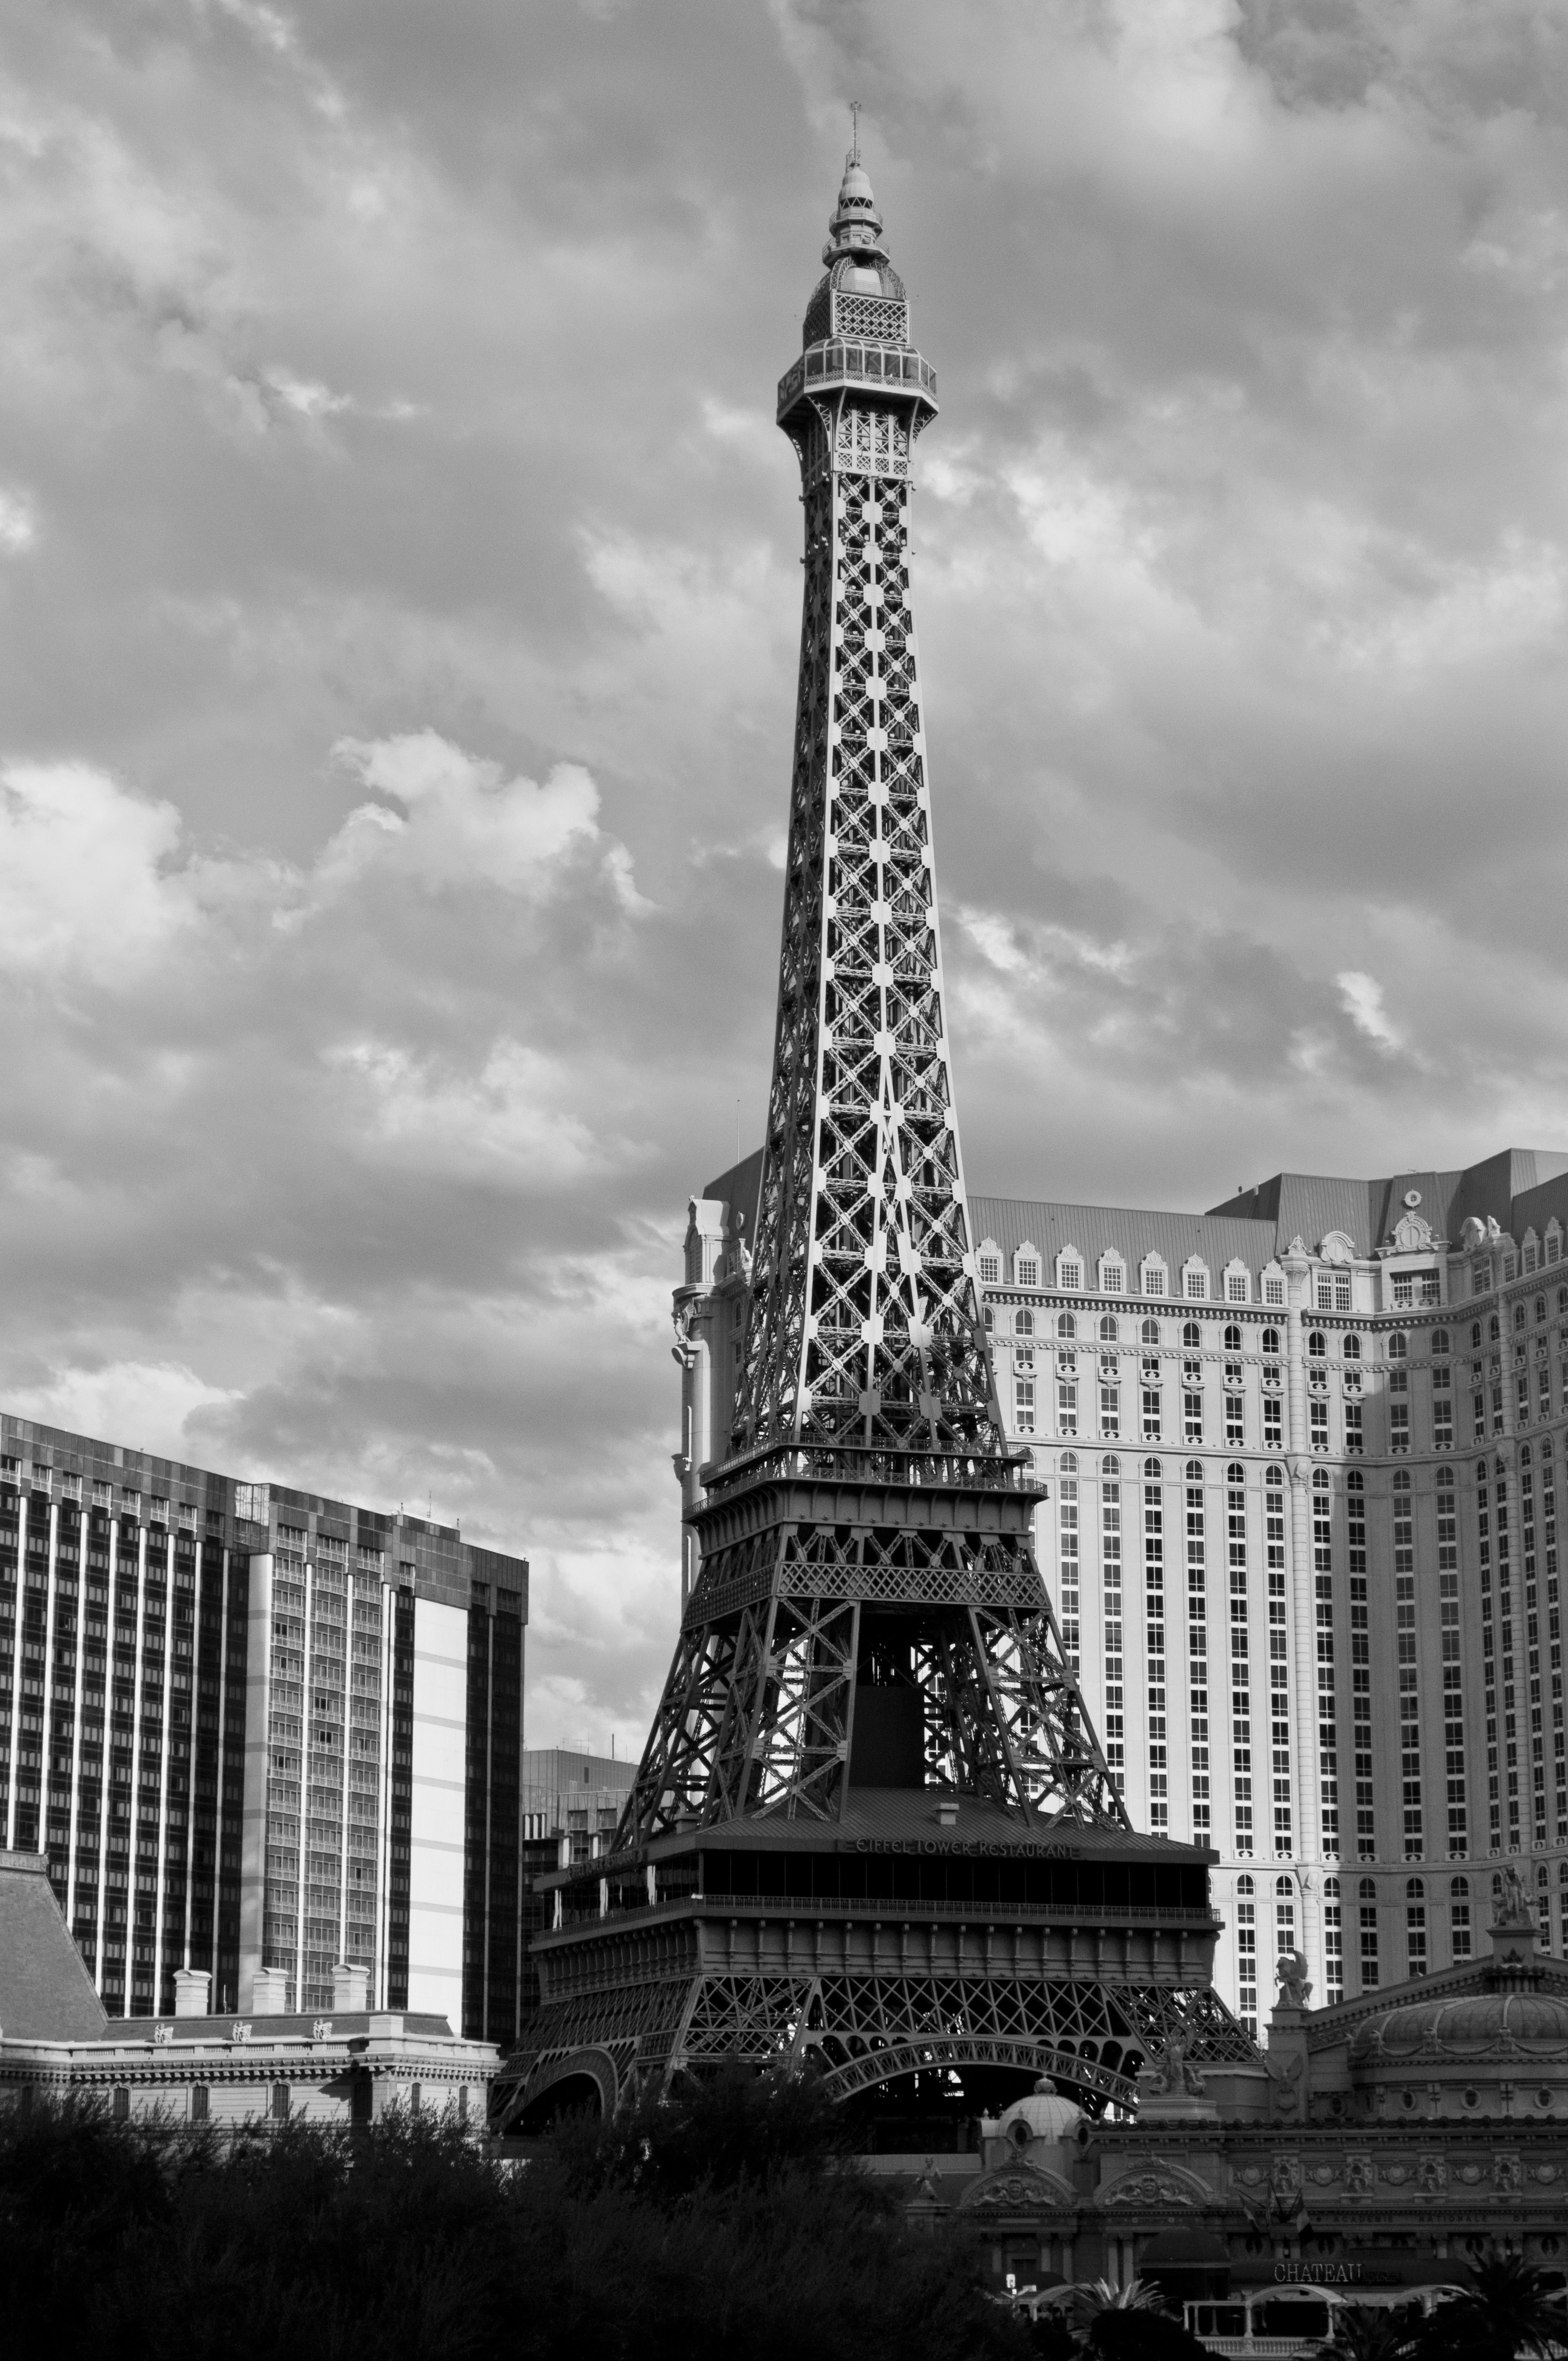 A photograph of the Eiffel Tower in Las Vegas. To purchase please go to http://memoriesoflove.imagekind.com